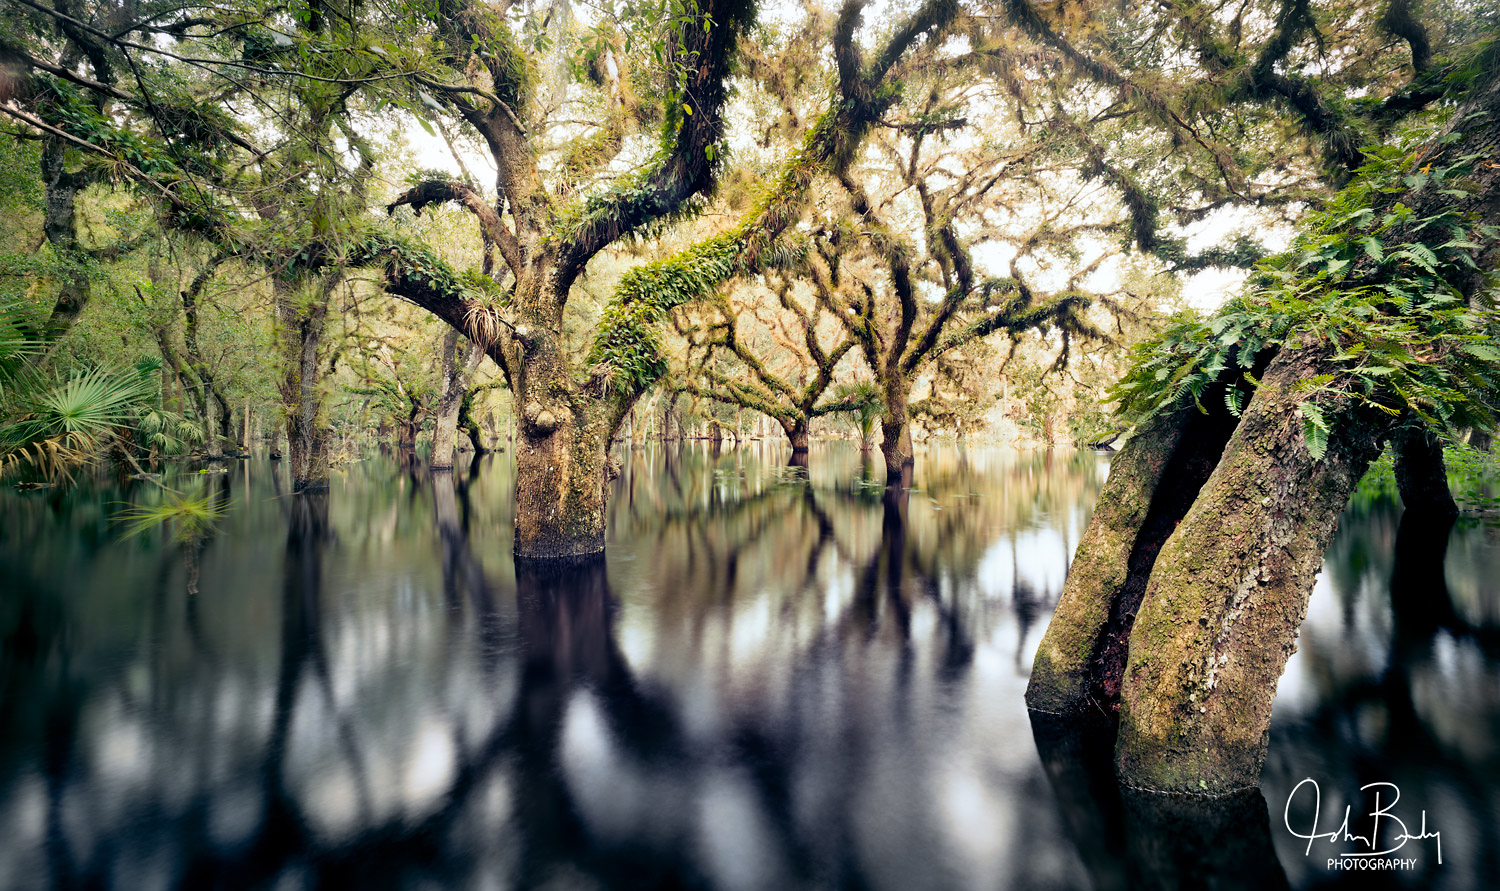 One of my favorite places to photograph is the Fisheating Creek The name comes from the translation of an Indian word that means...